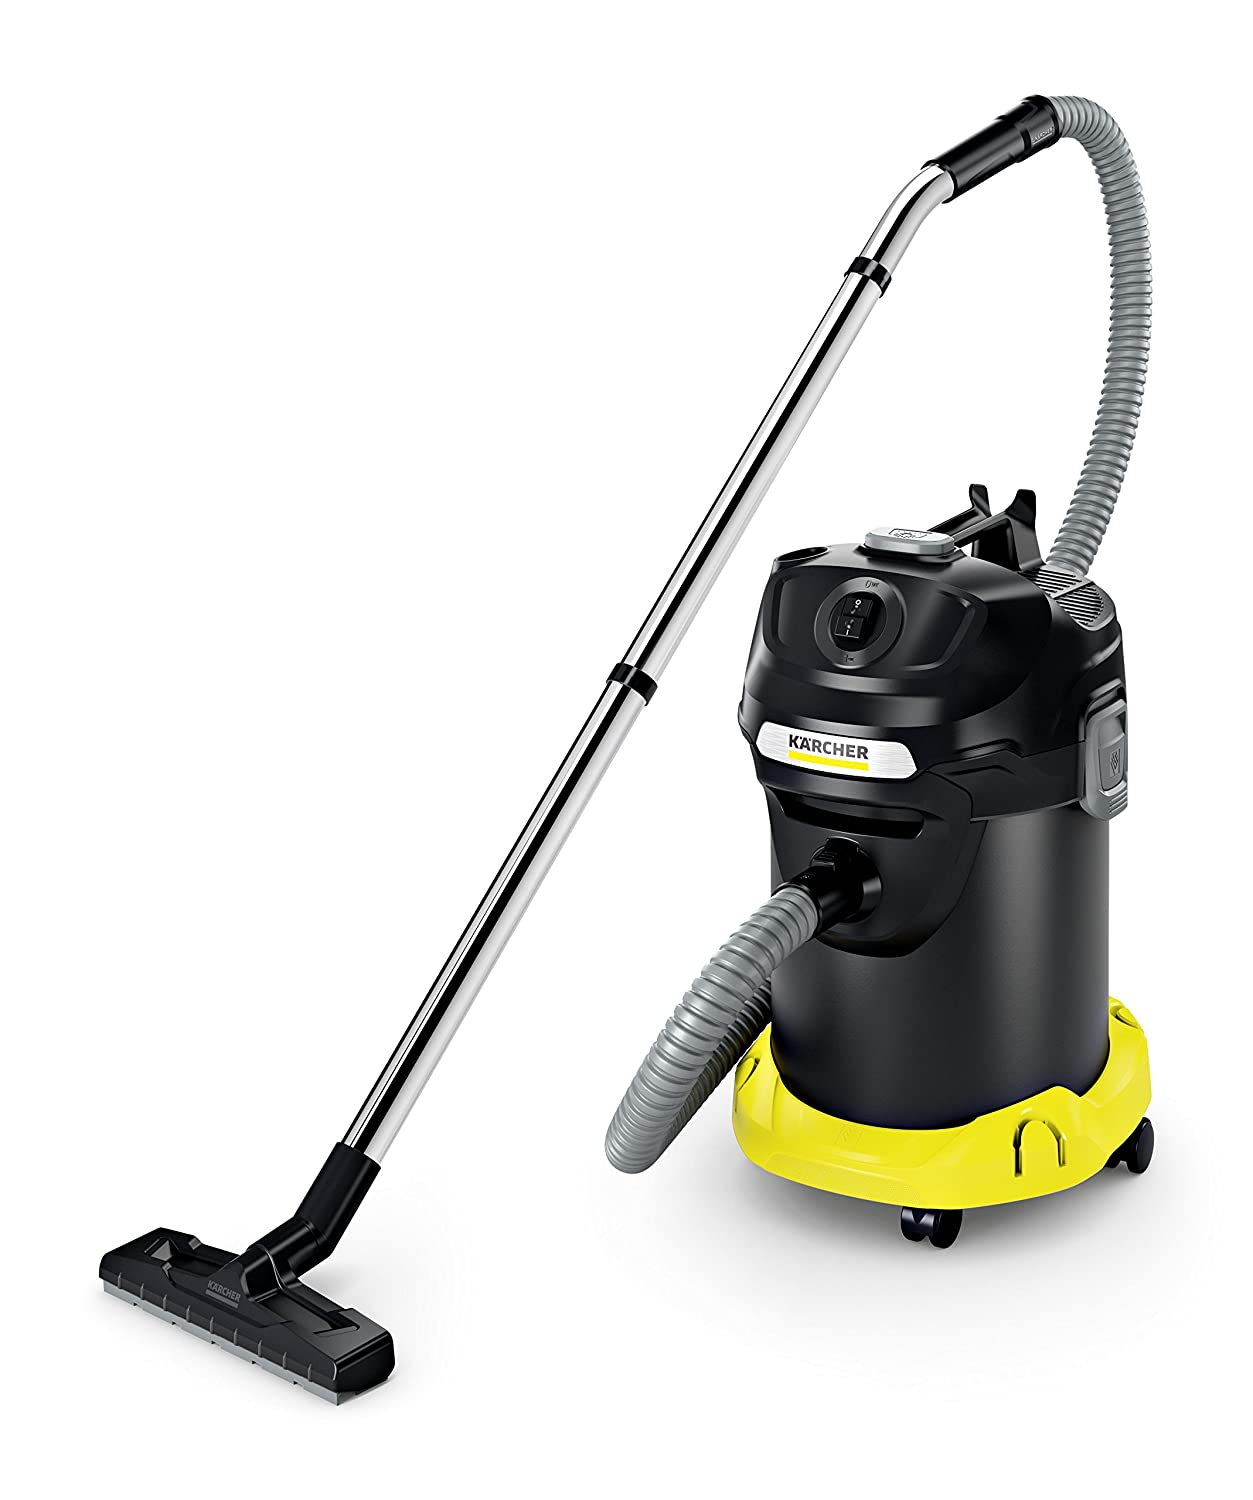 Karcher Ash Vacuum Cleaner and Dry Vacuum Cleaner (with Filter), 1.629-711.0 Kärcher